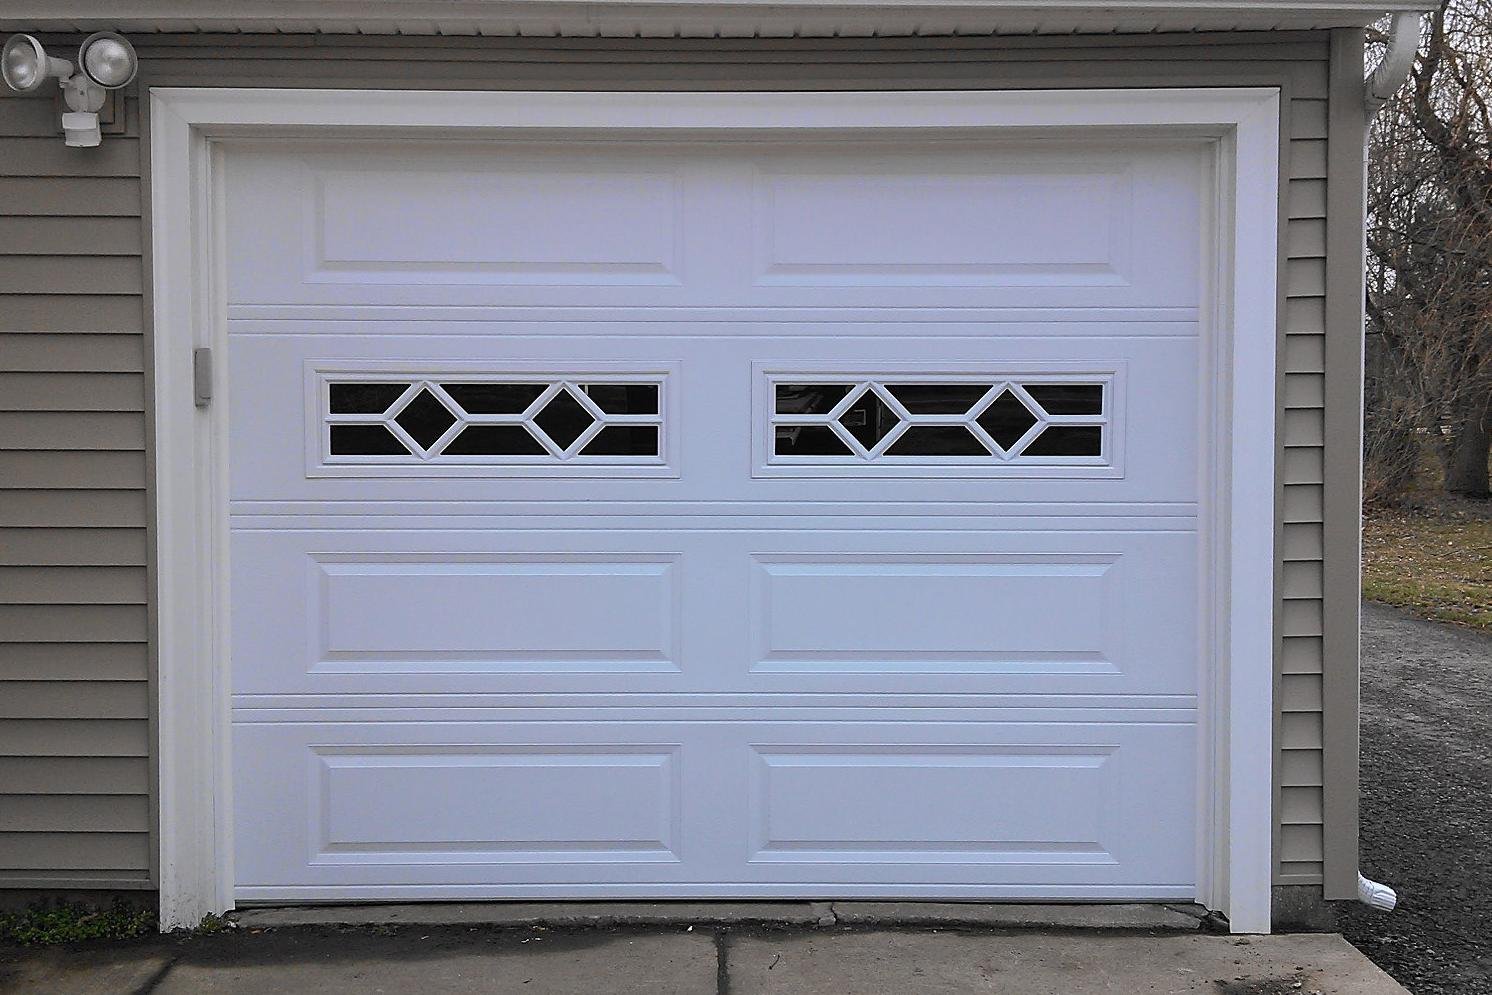 9x7 Overhead Garage Door w-Waterton Decorative Inserts